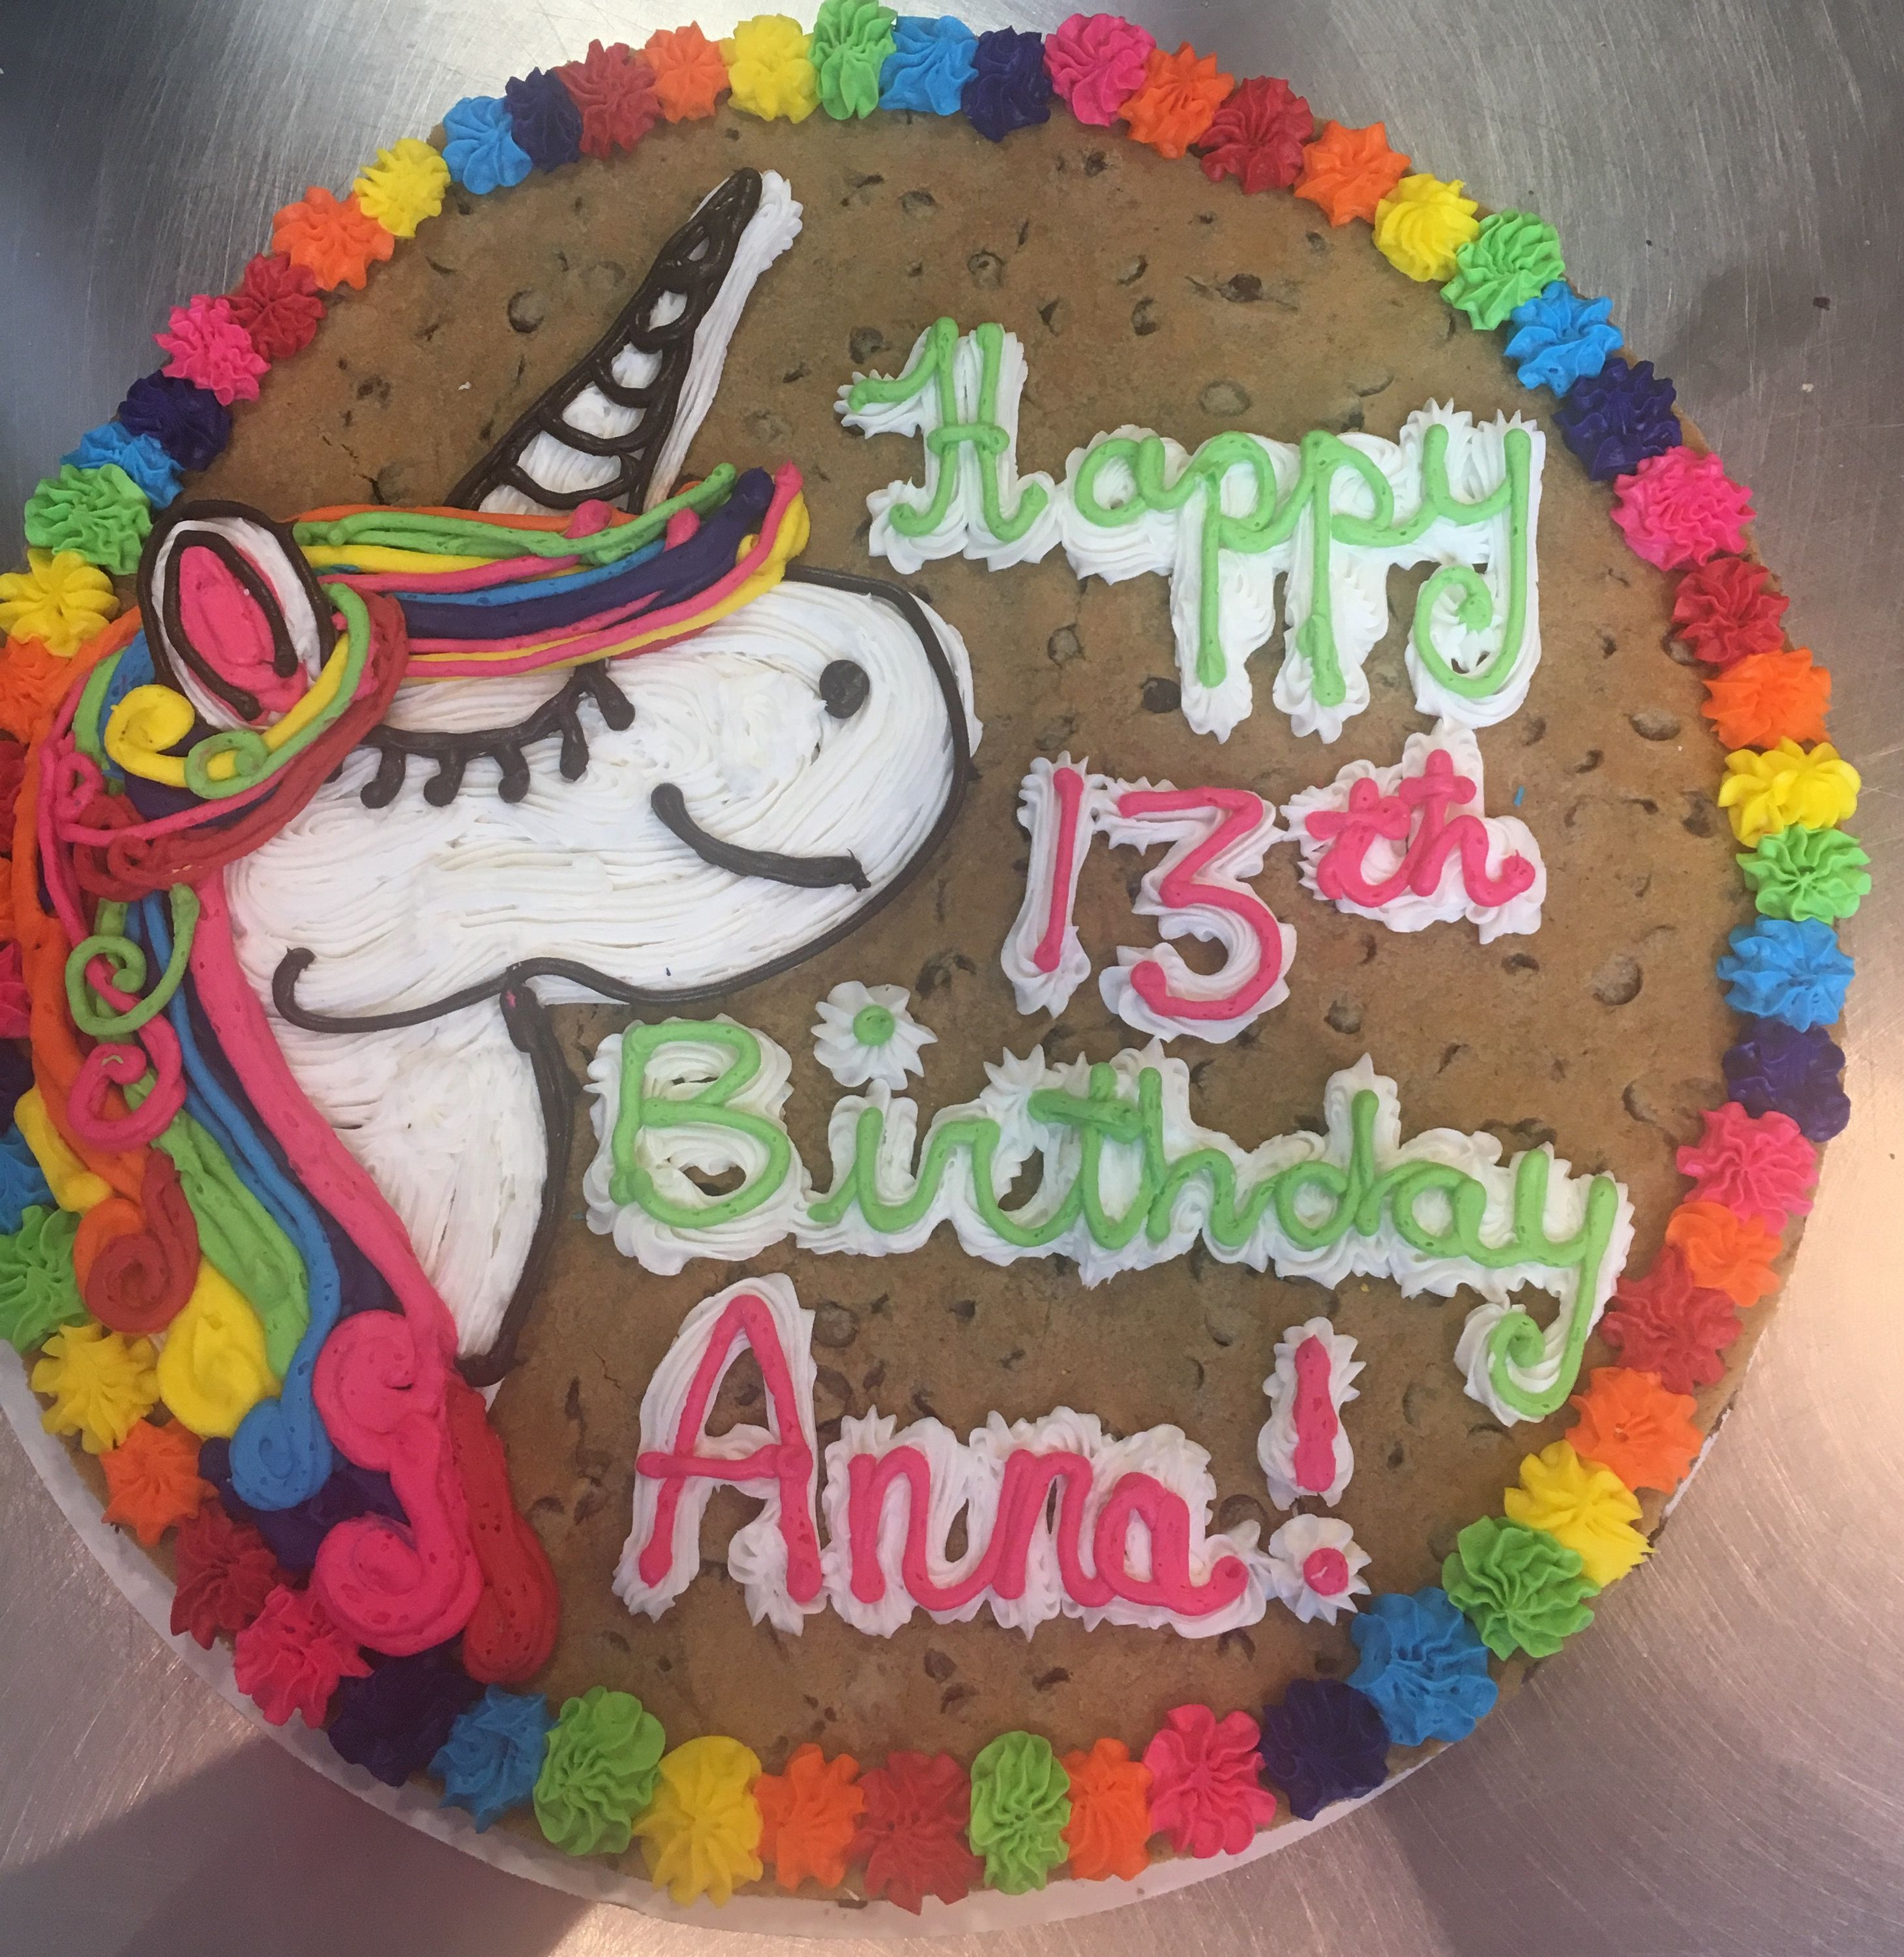 Adorable Rainbow Unicorn Cookie Cake From Great American Cookies